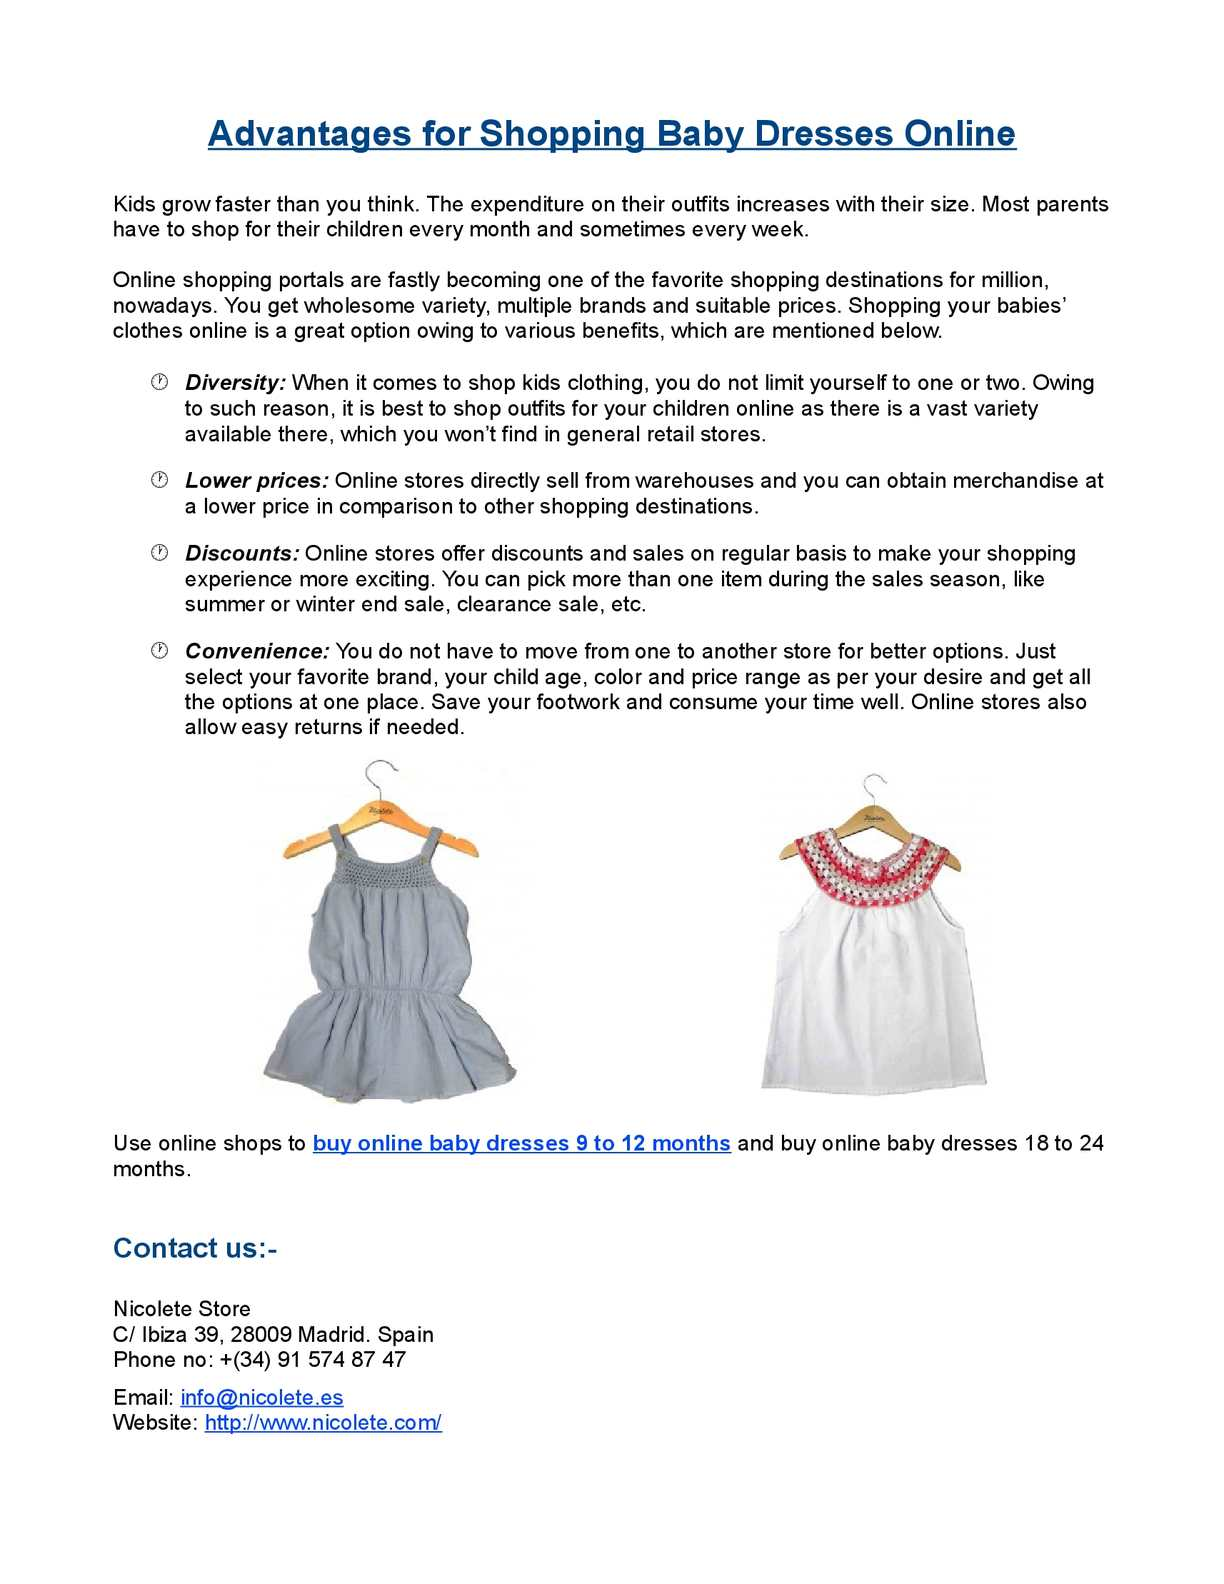 Calaméo - Advantages for Shopping Baby Dresses Online